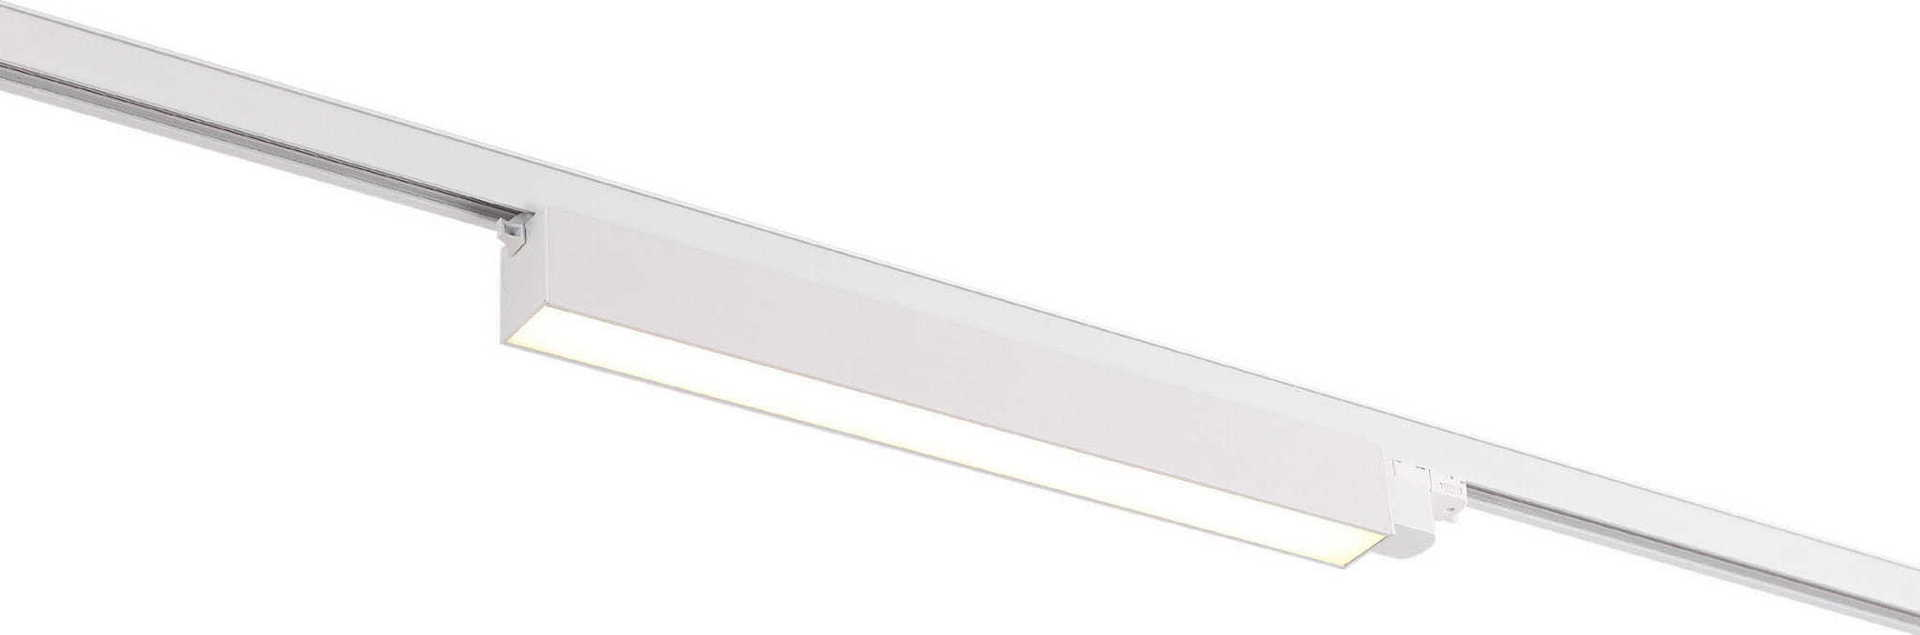 LINEAR S0009 HOUSING FOR A BUSBAR Max Light